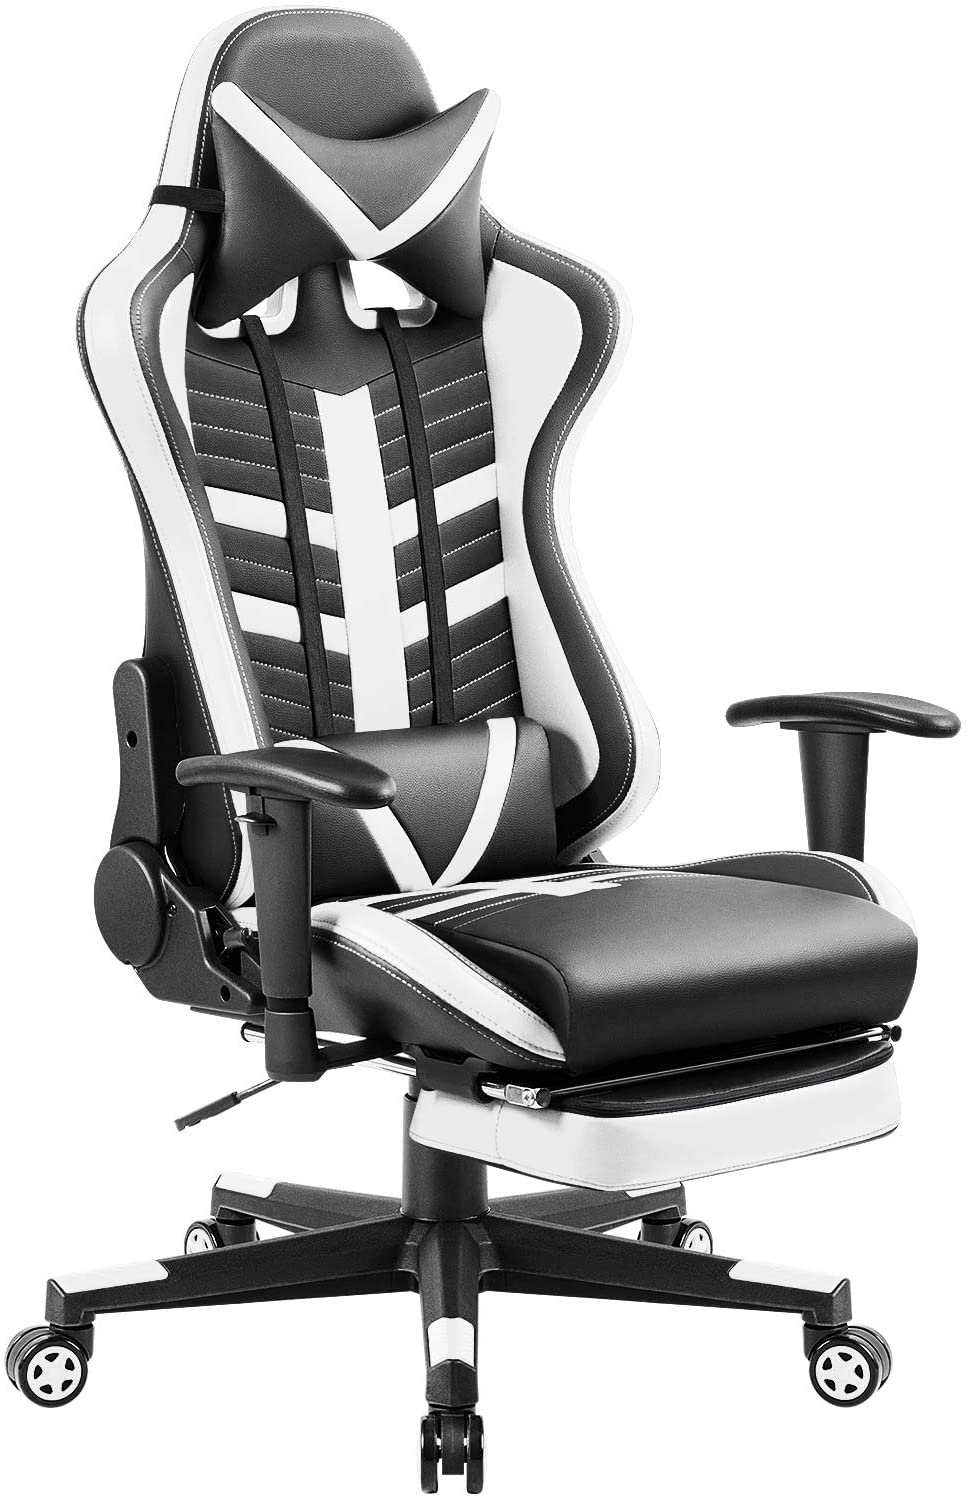 Homall Executive Desk Footrest Computer Swivel Office Headrest and Lumbar Support Ergonomic High-Back Racing Chair, Black/White